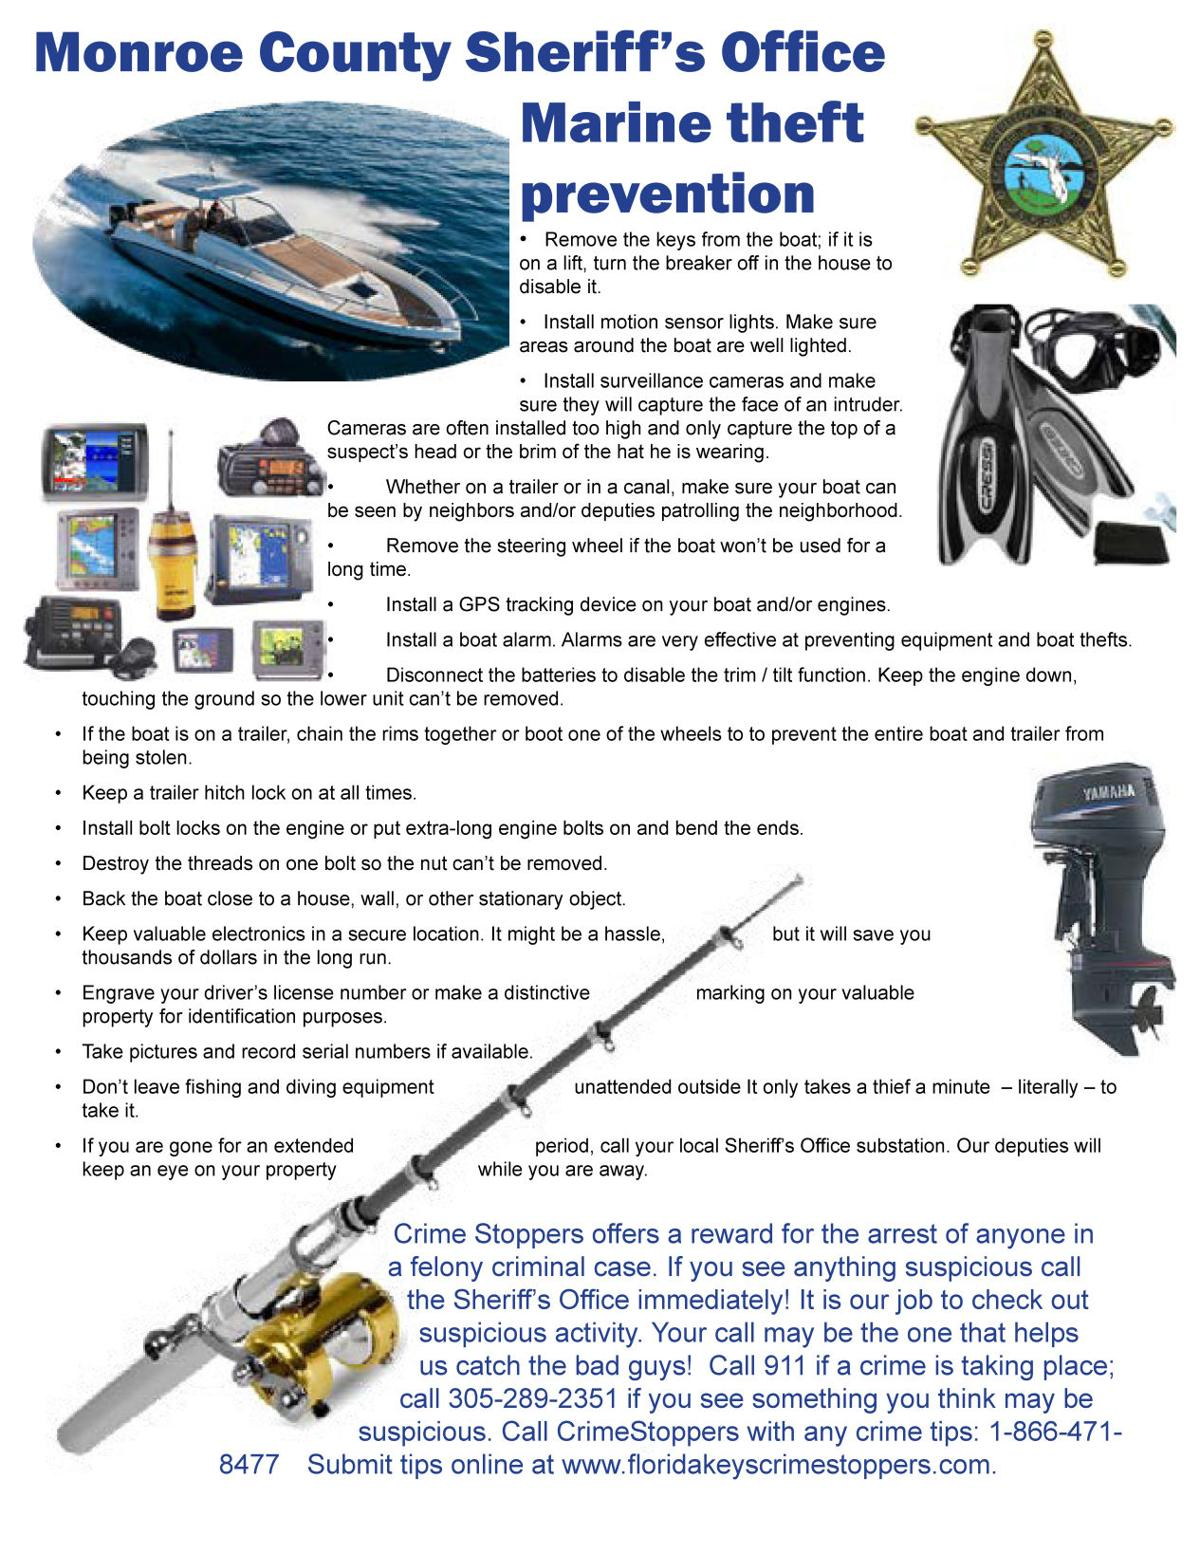 Protect yourself from marine theft